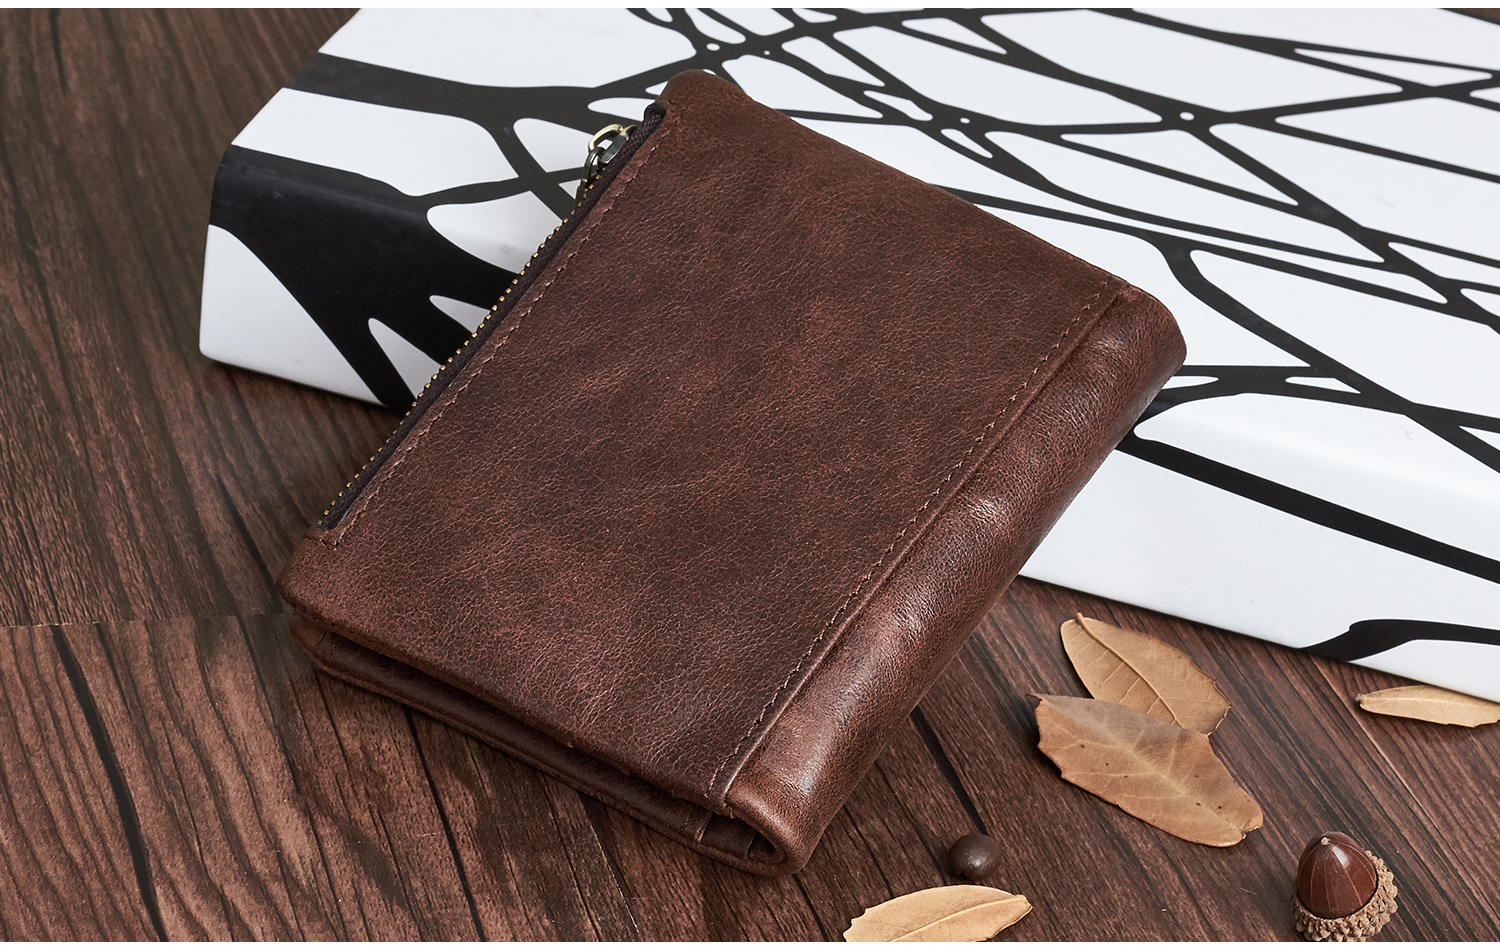 CHARGER - Vintage Leather Wallet with Zipper Pocket | Dukesman.com